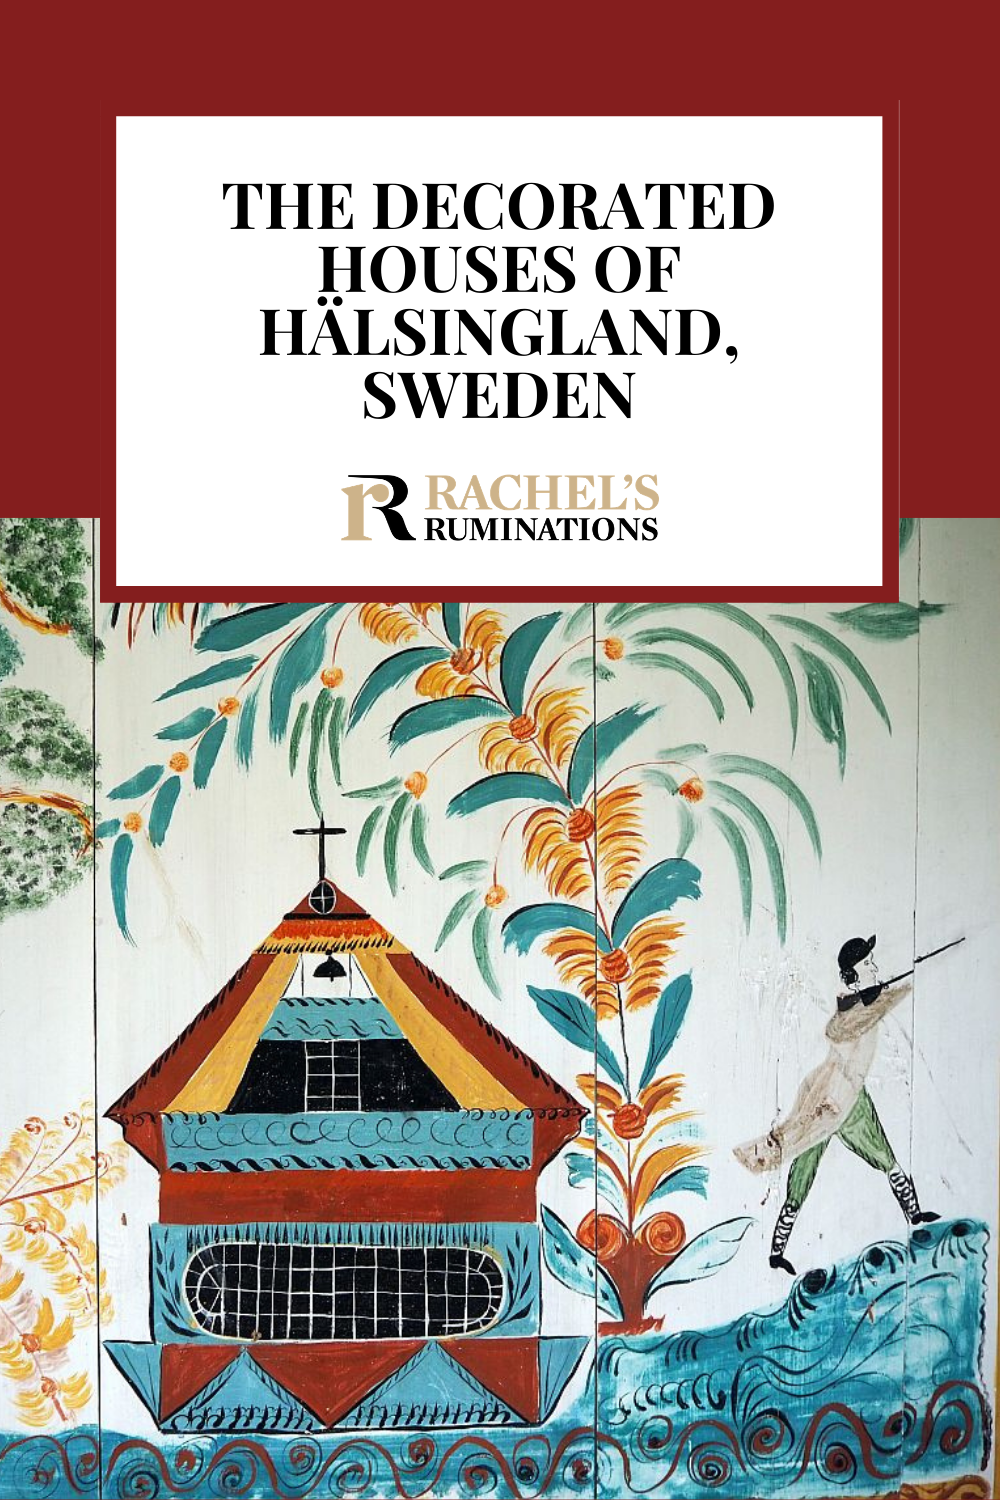 The Decorated Farmhouses of Hälsingland, Sweden is a collection of farmhouses with unique interiors filled with folk art decorations: an expression of wealth and aspiration to a higher social class. via @rachelsruminations